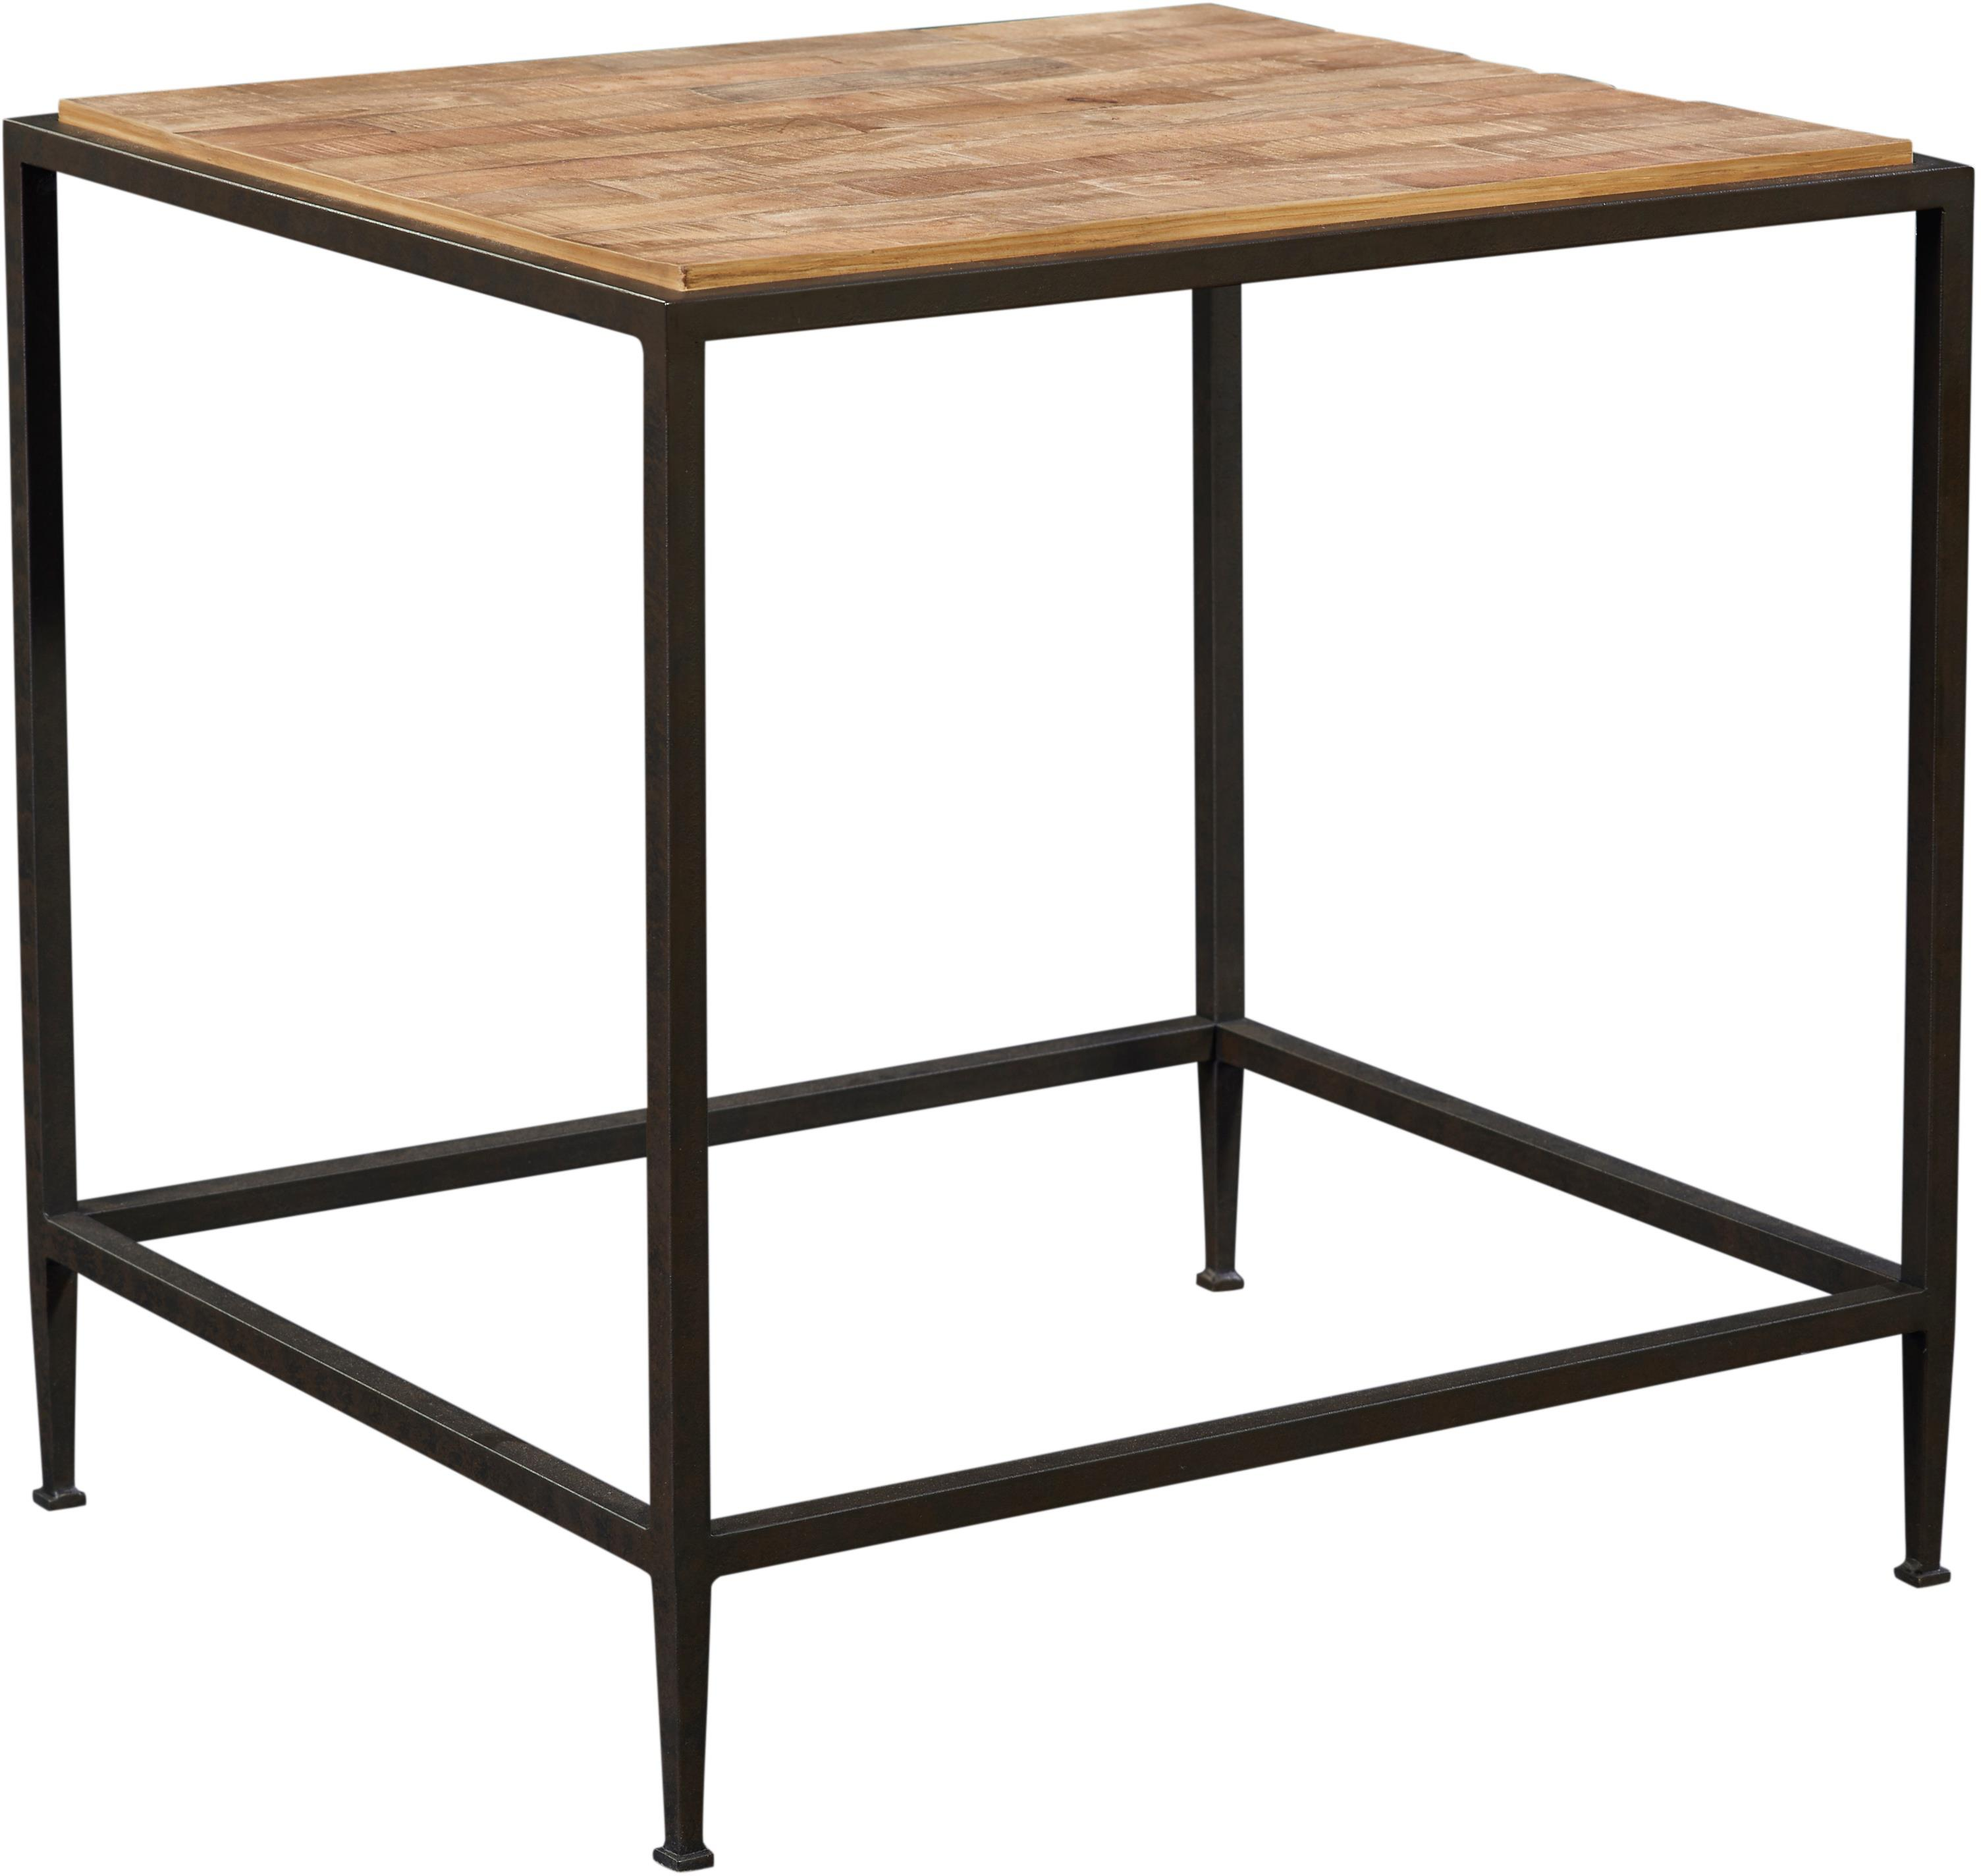 Broyhill Furniture Ariana End Table - Item Number: 3188-002